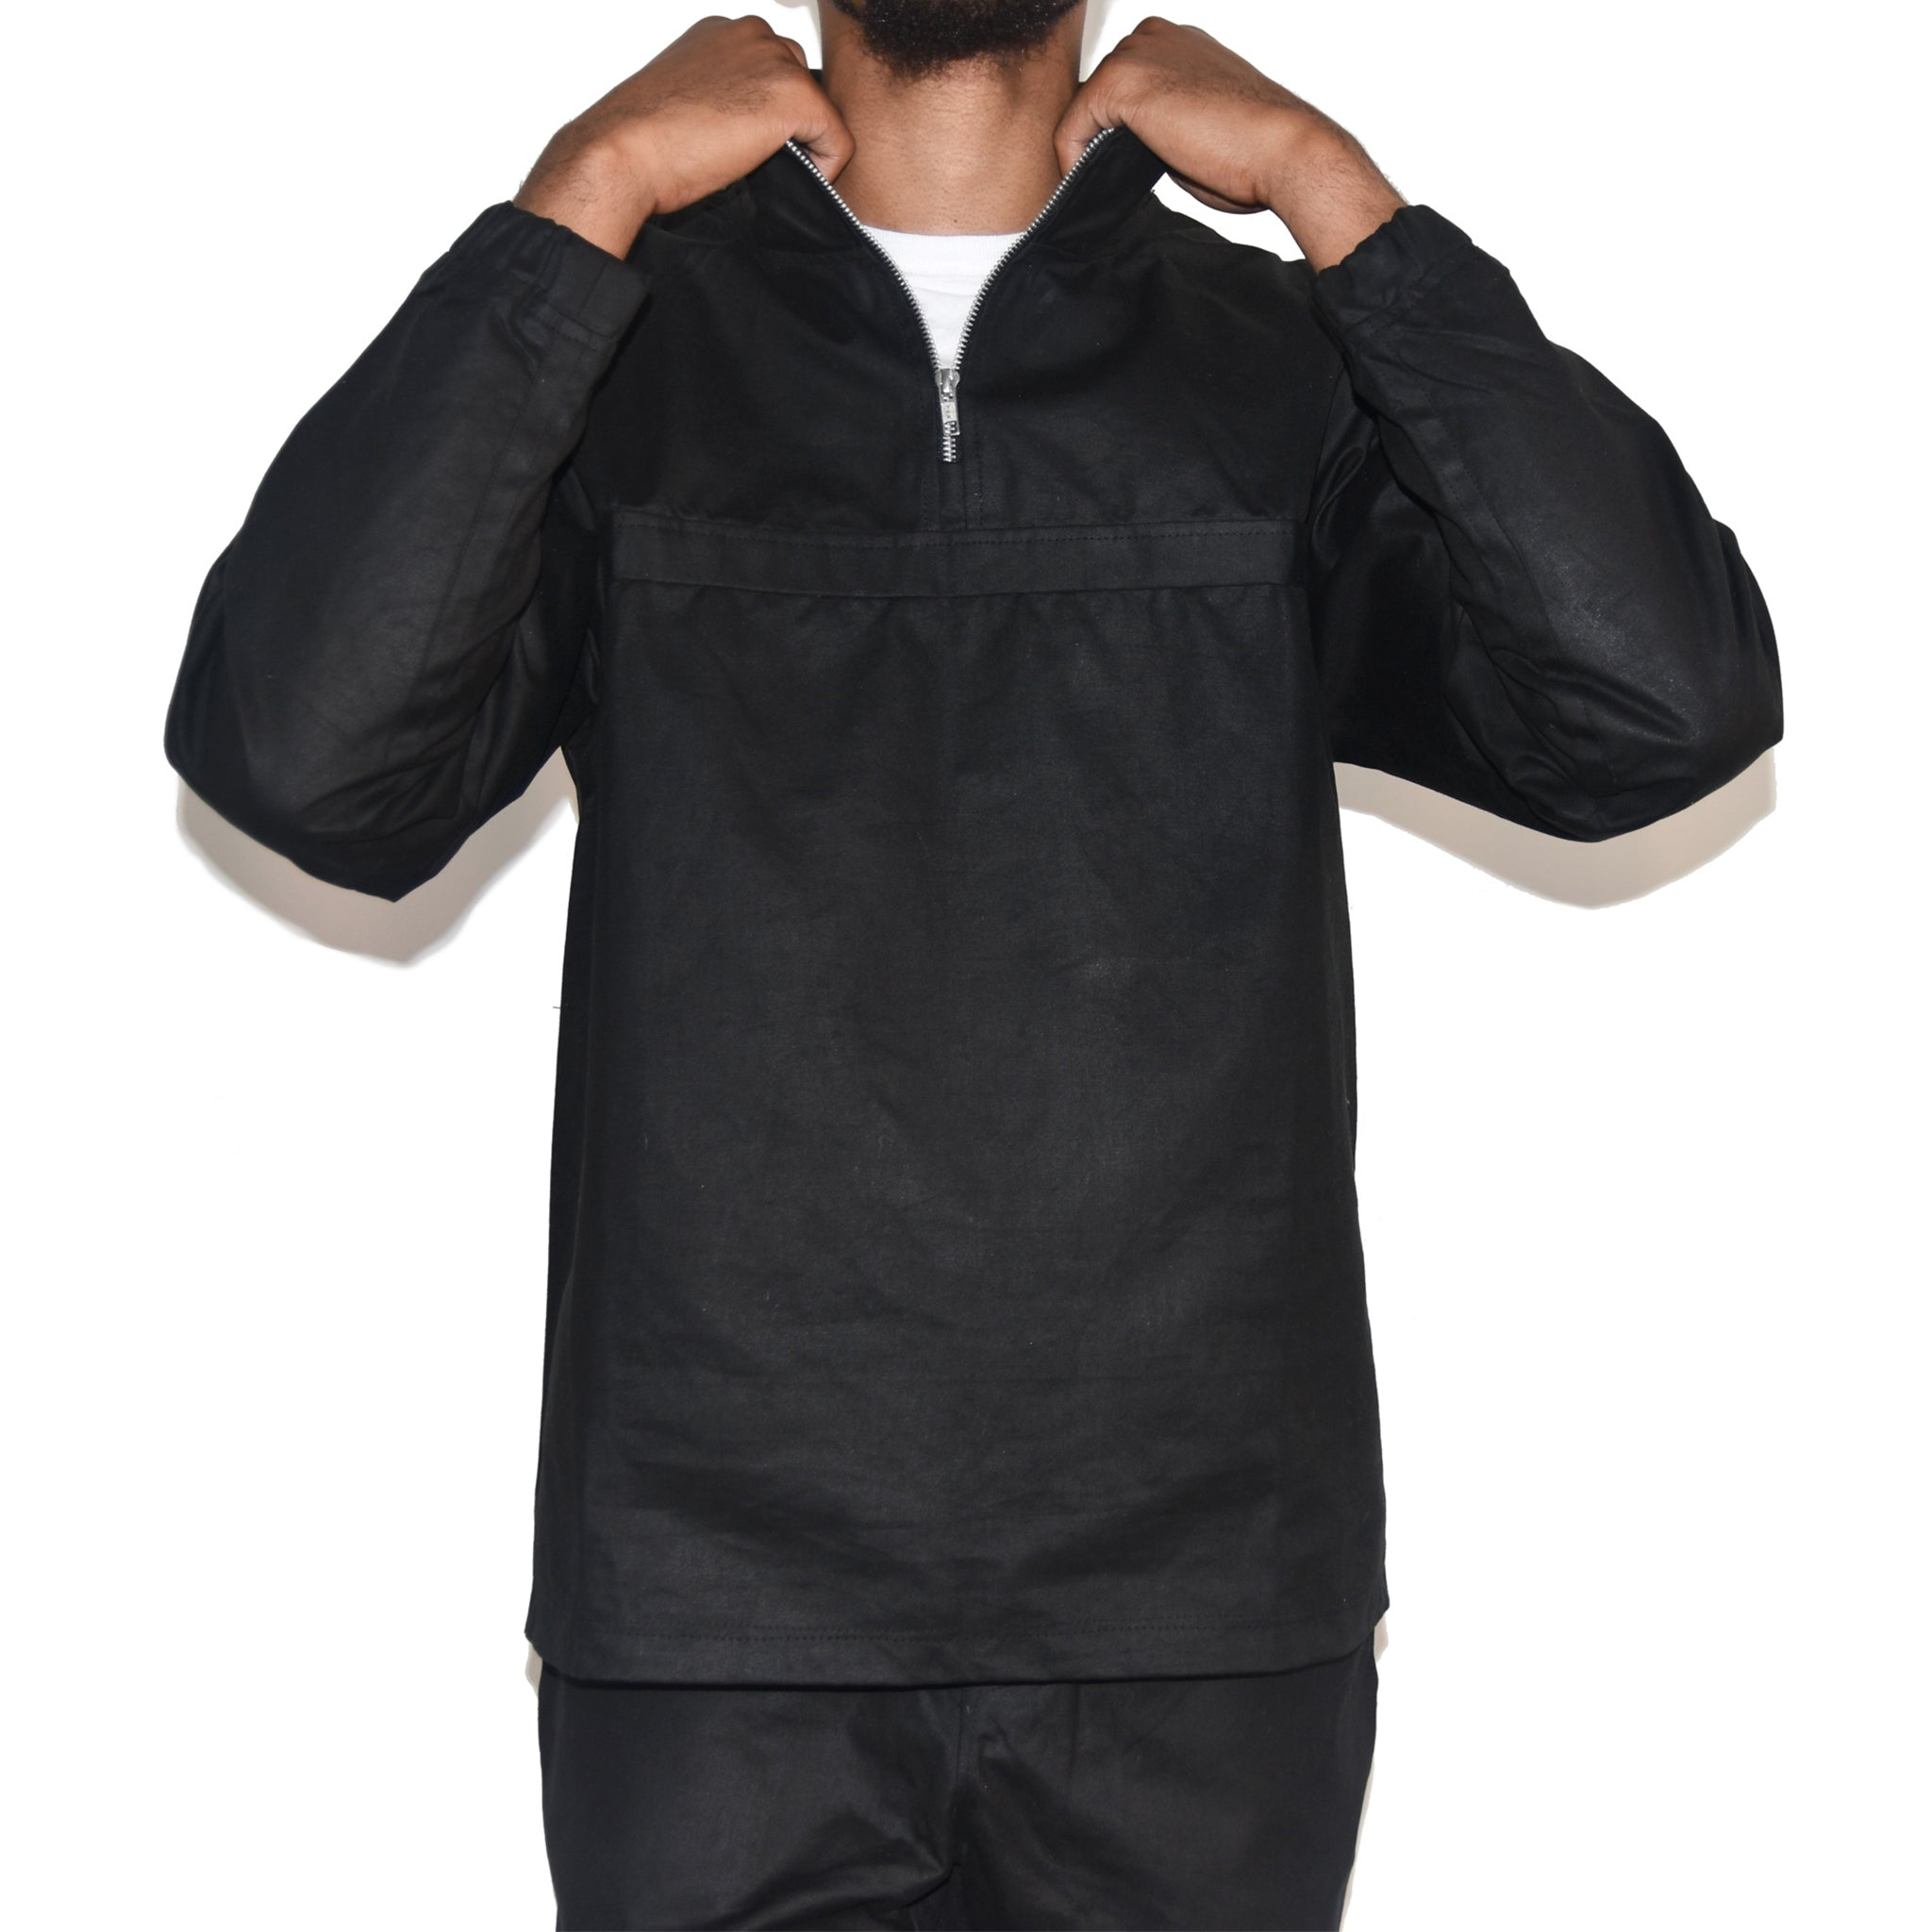 Habits Studios Waxed Cotton Half Zip Pullover Jacket in Black on Well(un)known wellunknown.com